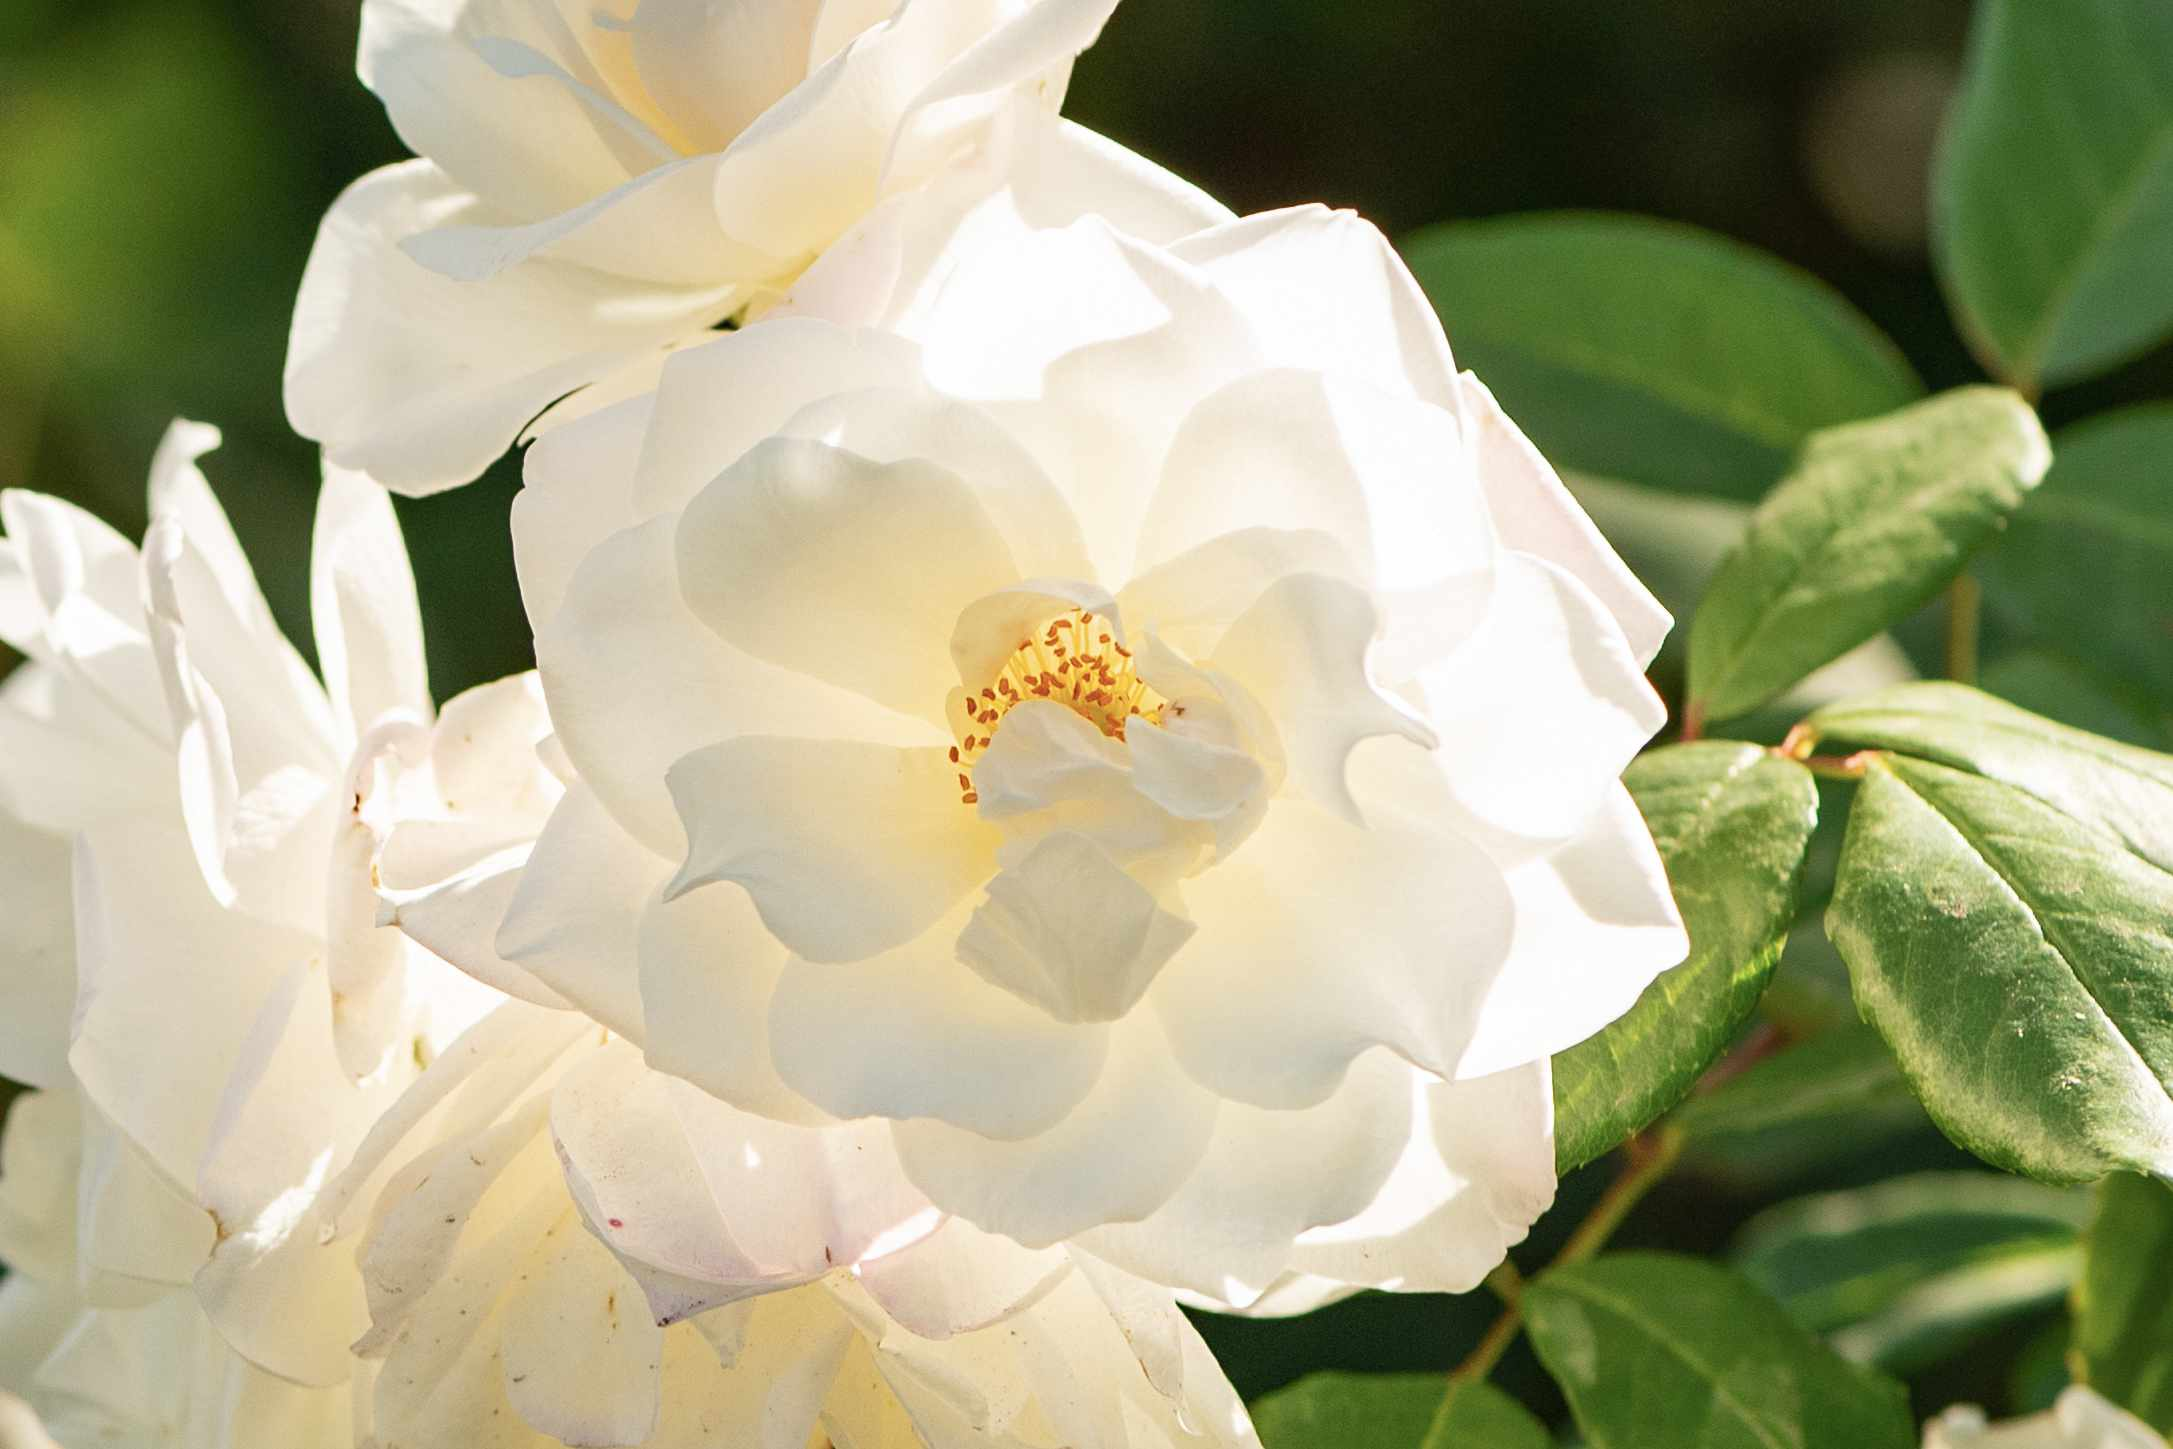 Cherokee rose with large white and ruffled flowers closeup